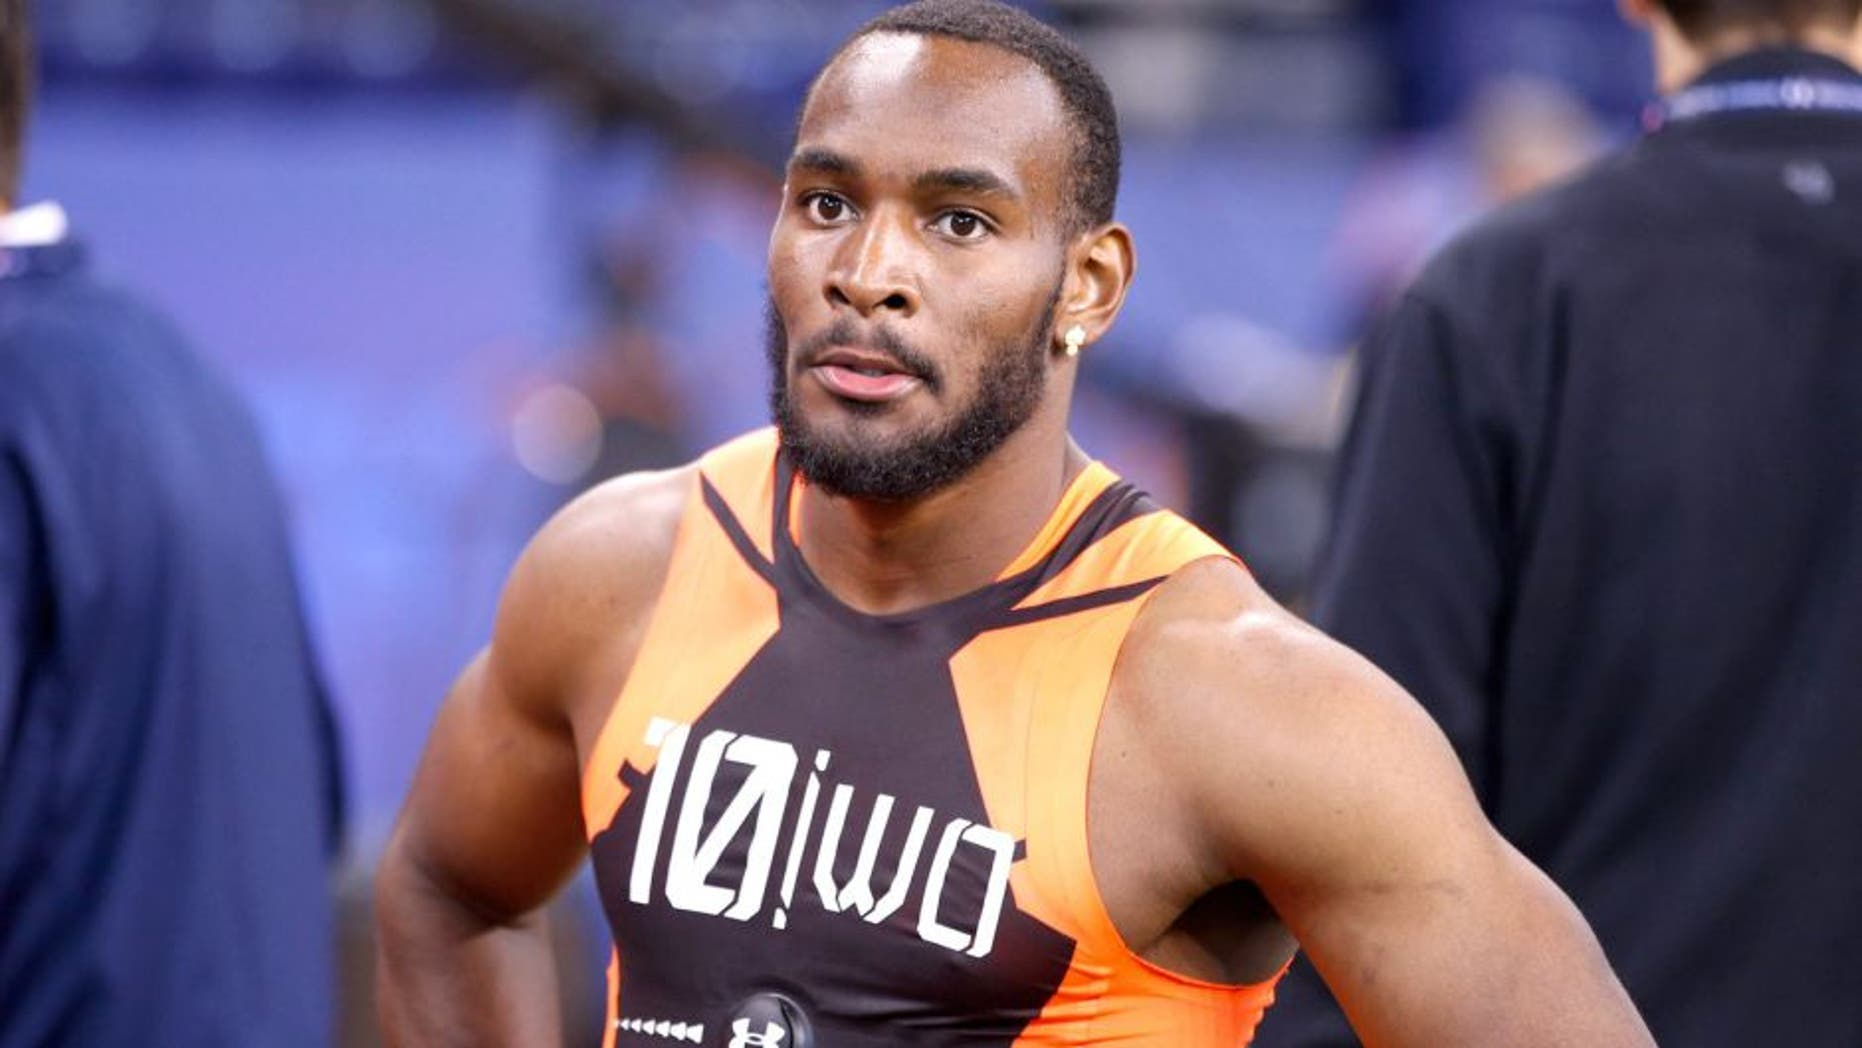 INDIANAPOLIS, IN - FEBRUARY 21: Wide receiver Jamison Crowder of Duke looks on during the 2015 NFL Scouting Combine at Lucas Oil Stadium on February 21, 2015 in Indianapolis, Indiana. (Photo by Joe Robbins/Getty Images)